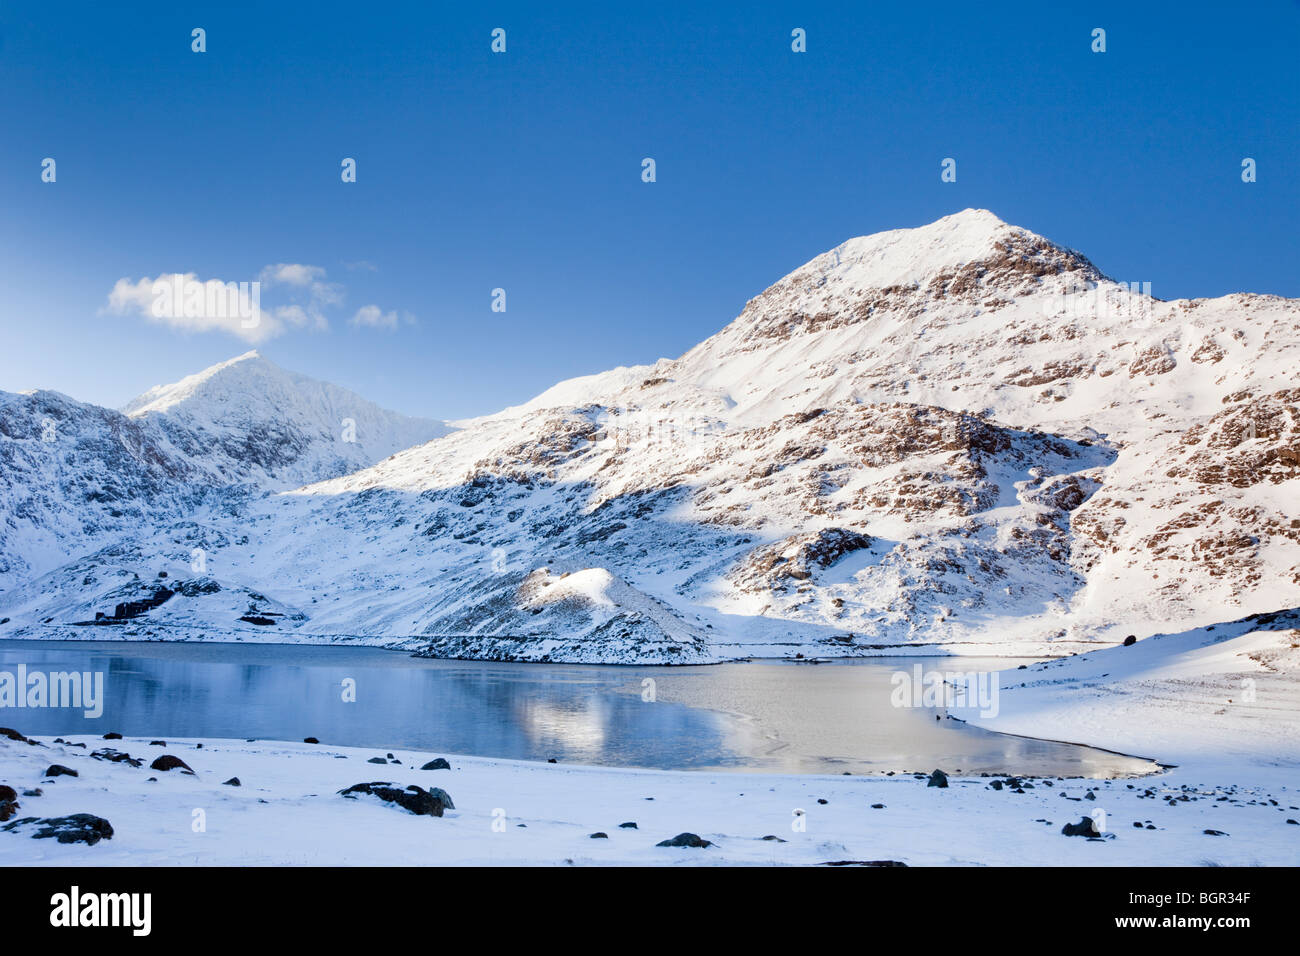 Llyn Llydaw lake with Crib Goch and Mount Snowdon mountain peak with snow in winter from Miners Track in Snowdonia National Park Eryri North Wales UK Stock Photo